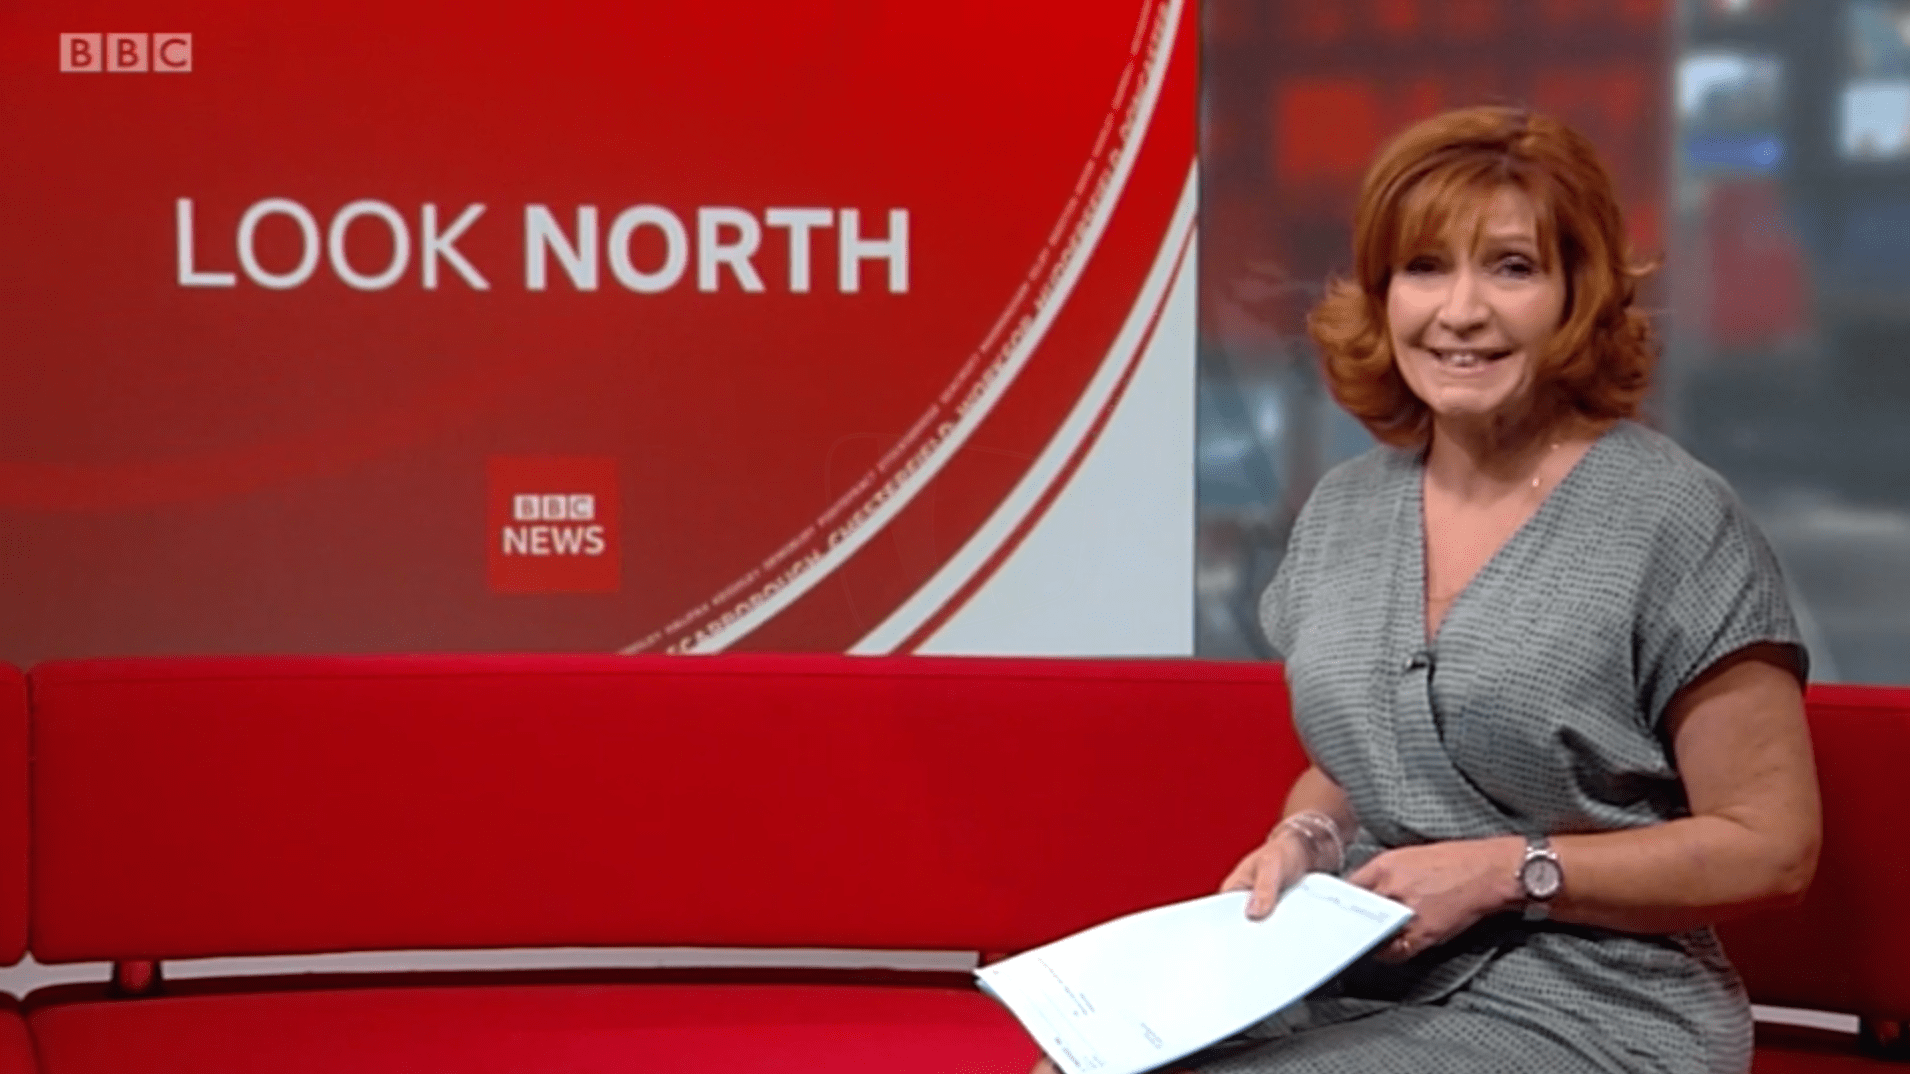 PICTURED: BBC Look North studio presentation. Presenter: Clare Frisby.